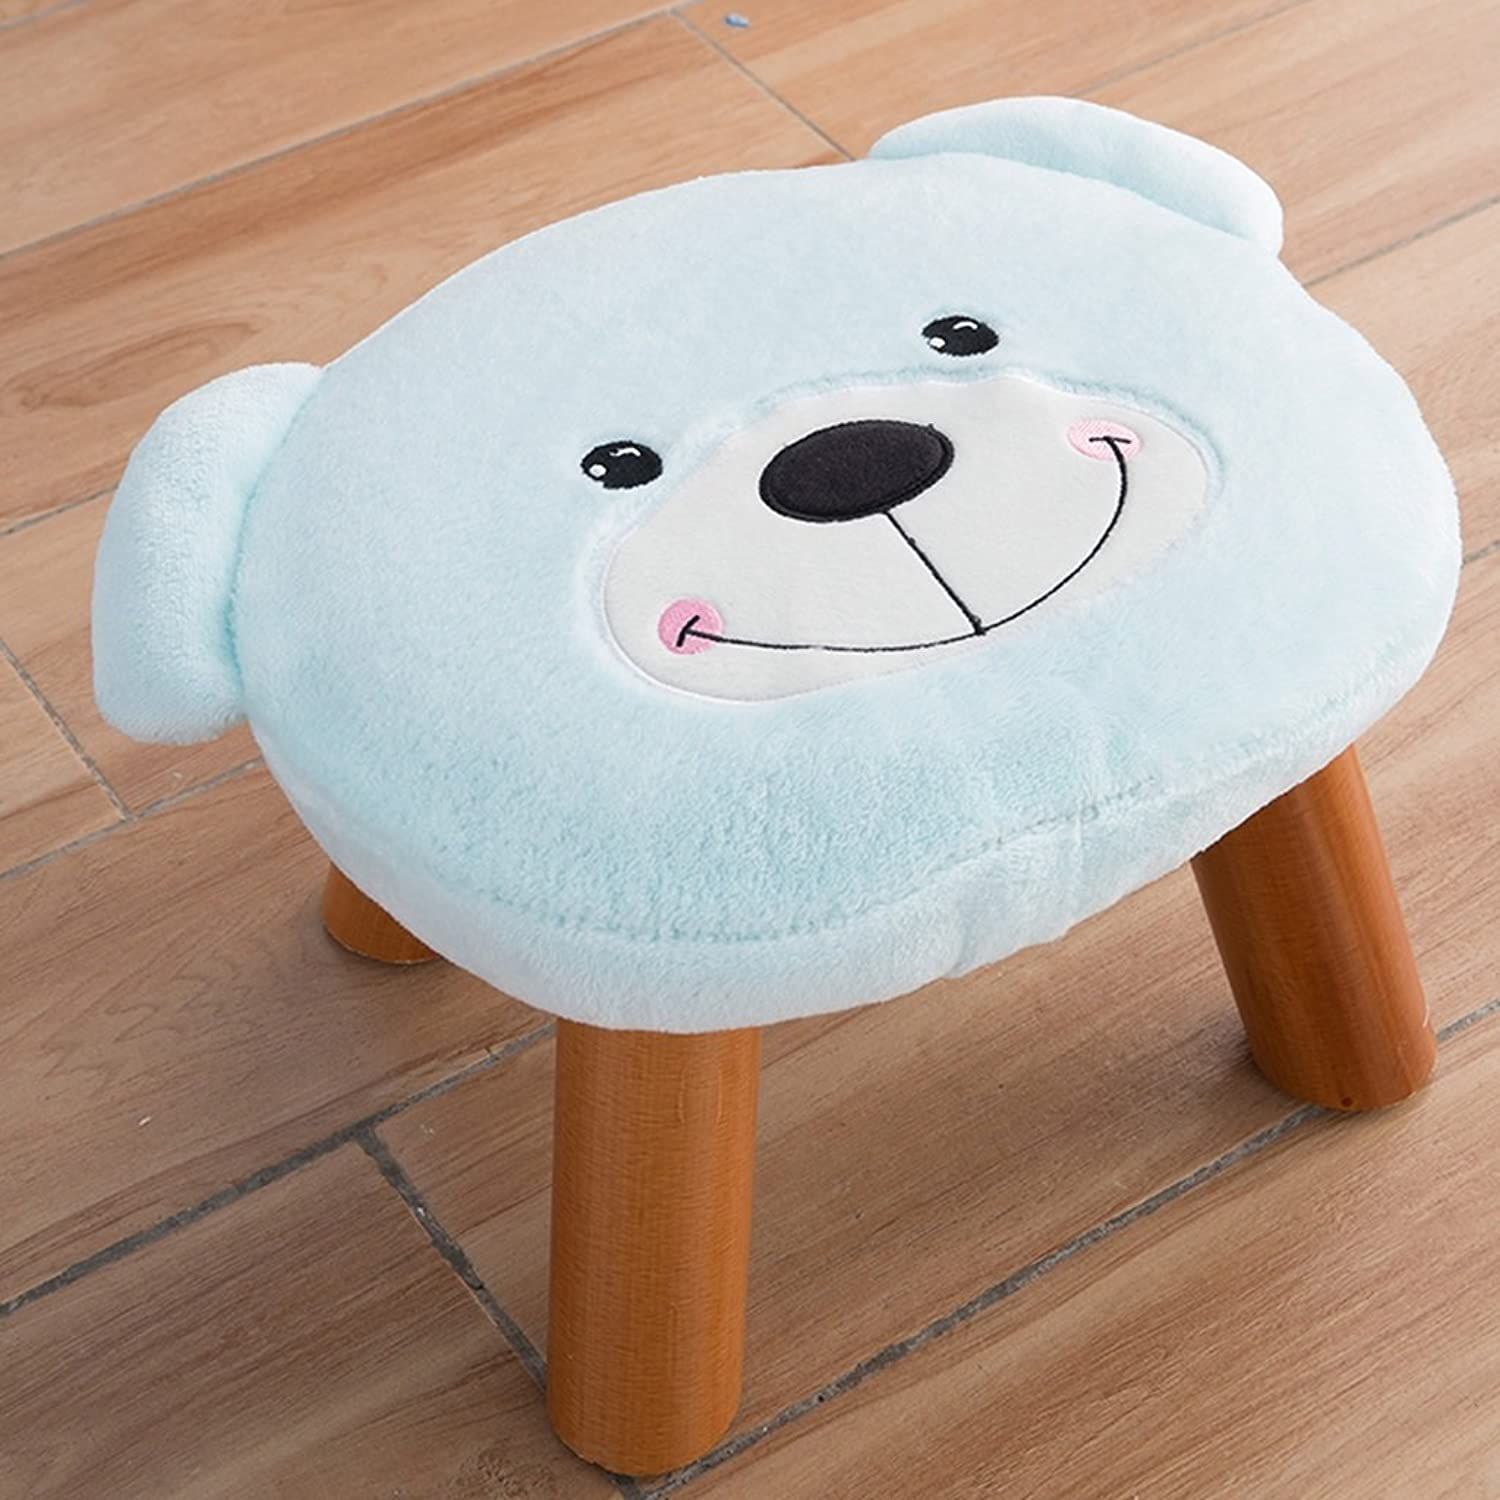 Padded Footstools Foot Rest with Wooden Legs Linen Fabric Cover Cute Bear (color   bluee)